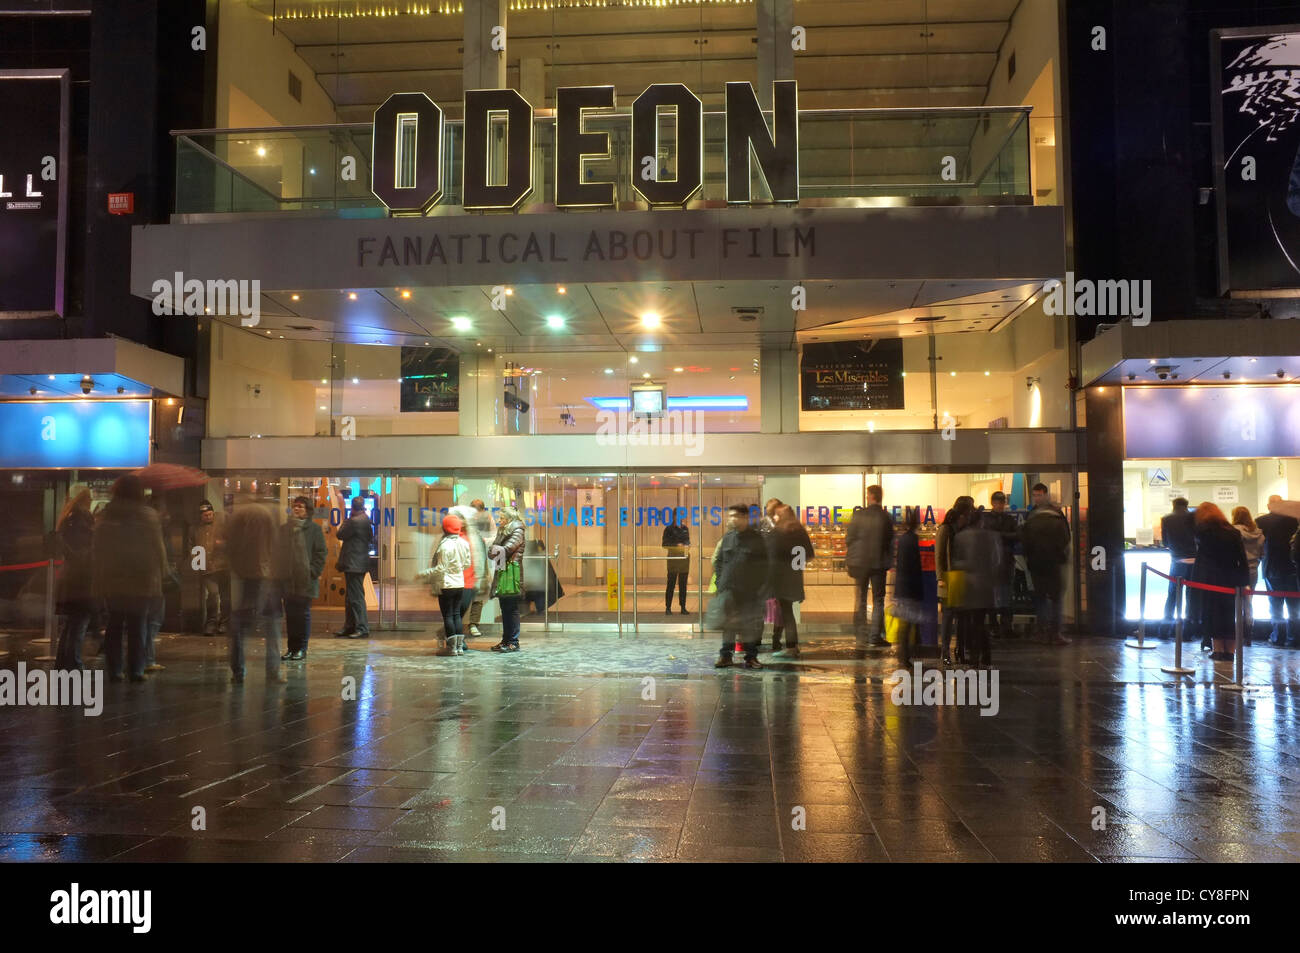 Odeon Cinema with people gathered outside in Leicester square, London - Stock Image